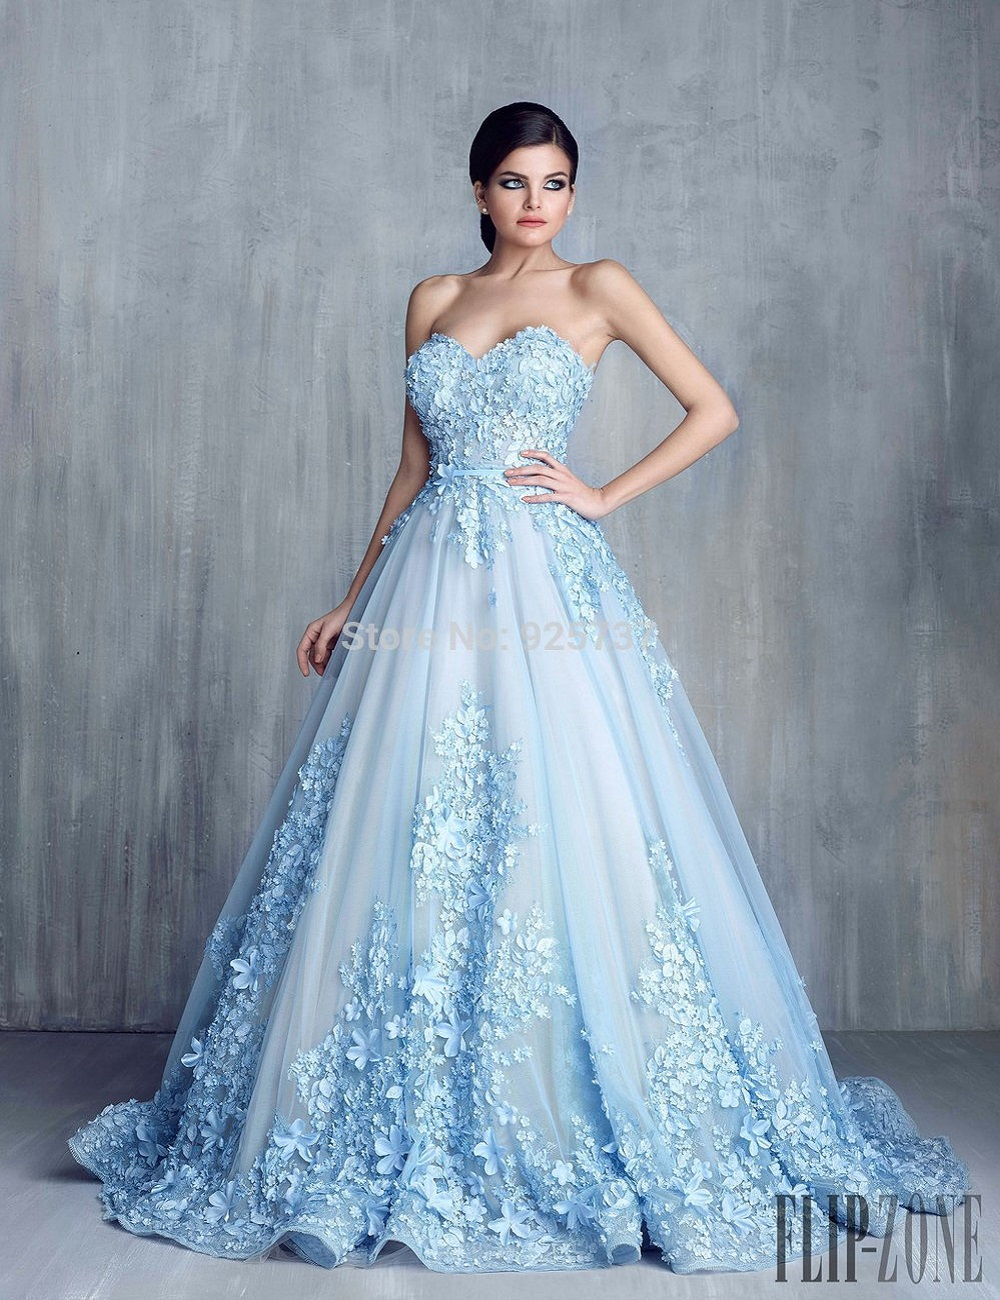 Wedding Online Prom Dresses online buy wholesale arabian prom dresses from china robe de soiree dubai sweetheart appliques pearls tulle blue 2017 online